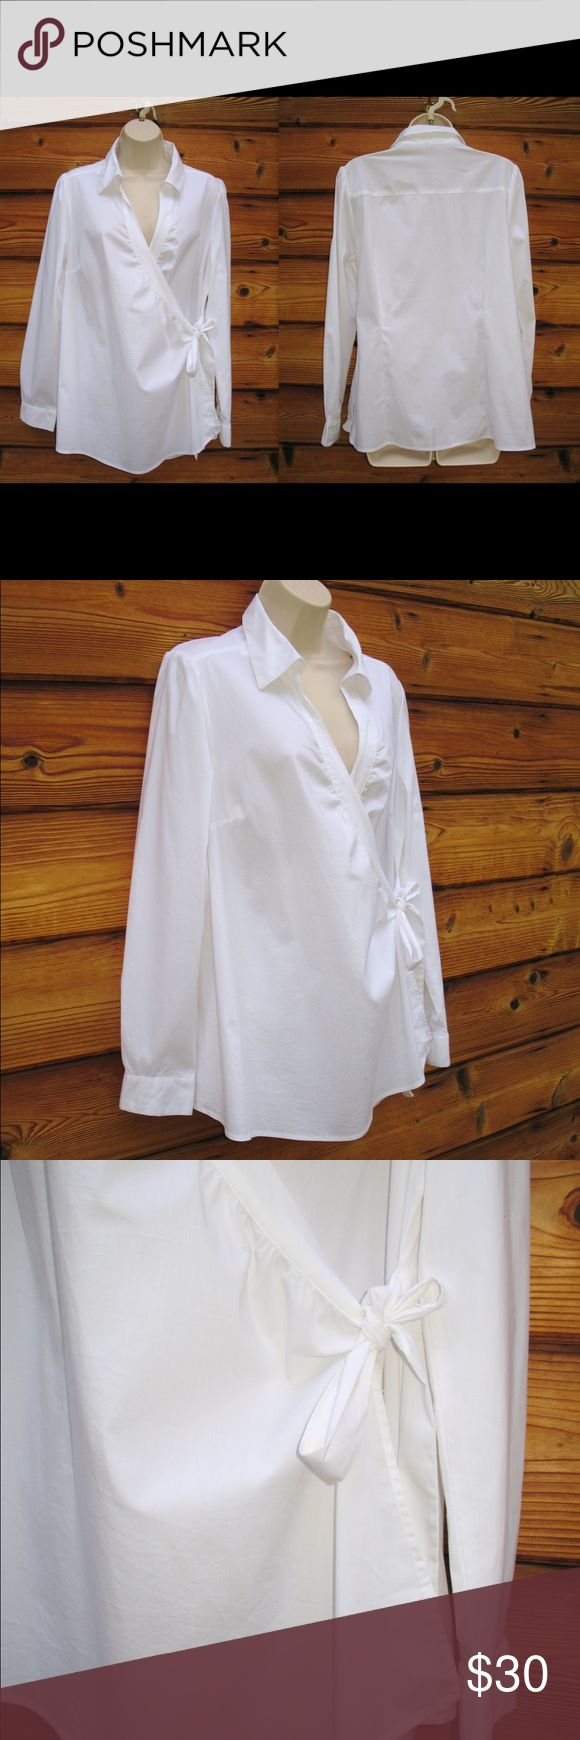 """🆕 Old Navy Maternity Full Wrap Blouse Old Navy Maternity Full Wrap Blouse, New with Tags  Details: Old Navy MAternity Size: L Color: White Cotton/Nylon/Elastane  Measurements: Length: 28"""" Bust: 44"""" Waist: 40"""" Old Navy Maternity Tops Blouses"""